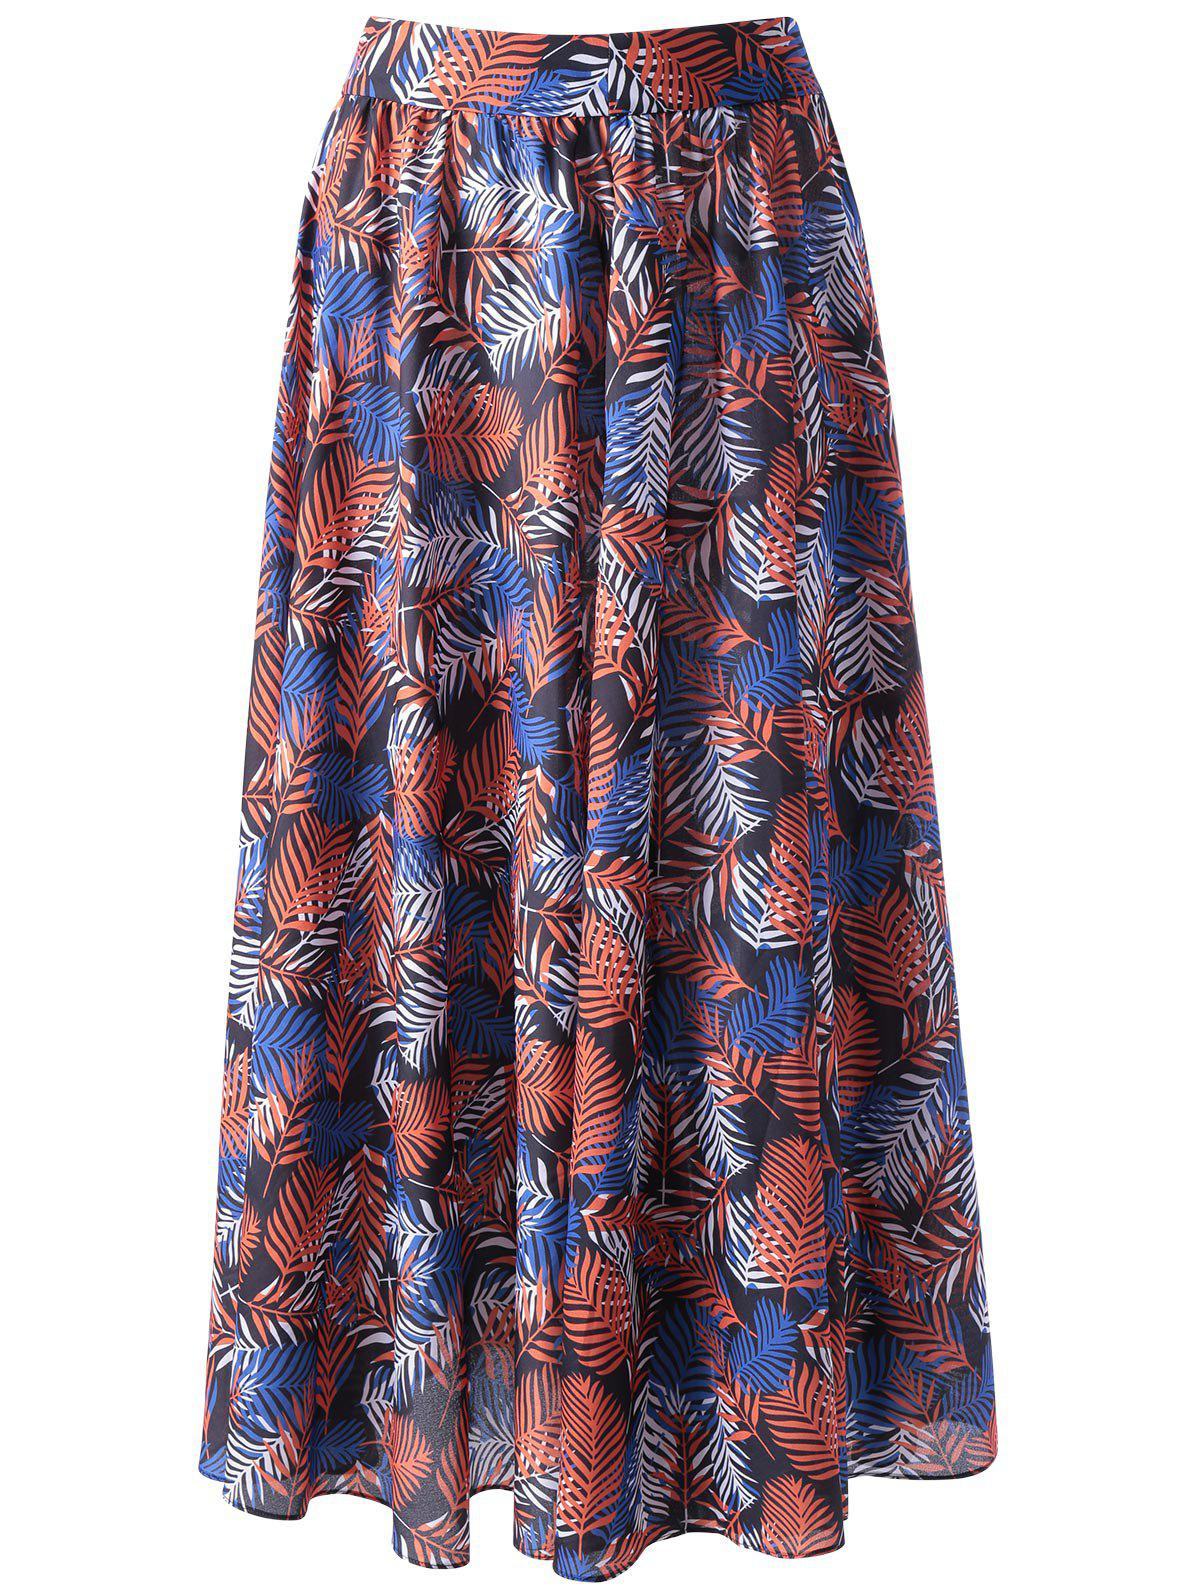 Trendy Ethnic Print Beach Skirt For Women - COLORMIX L